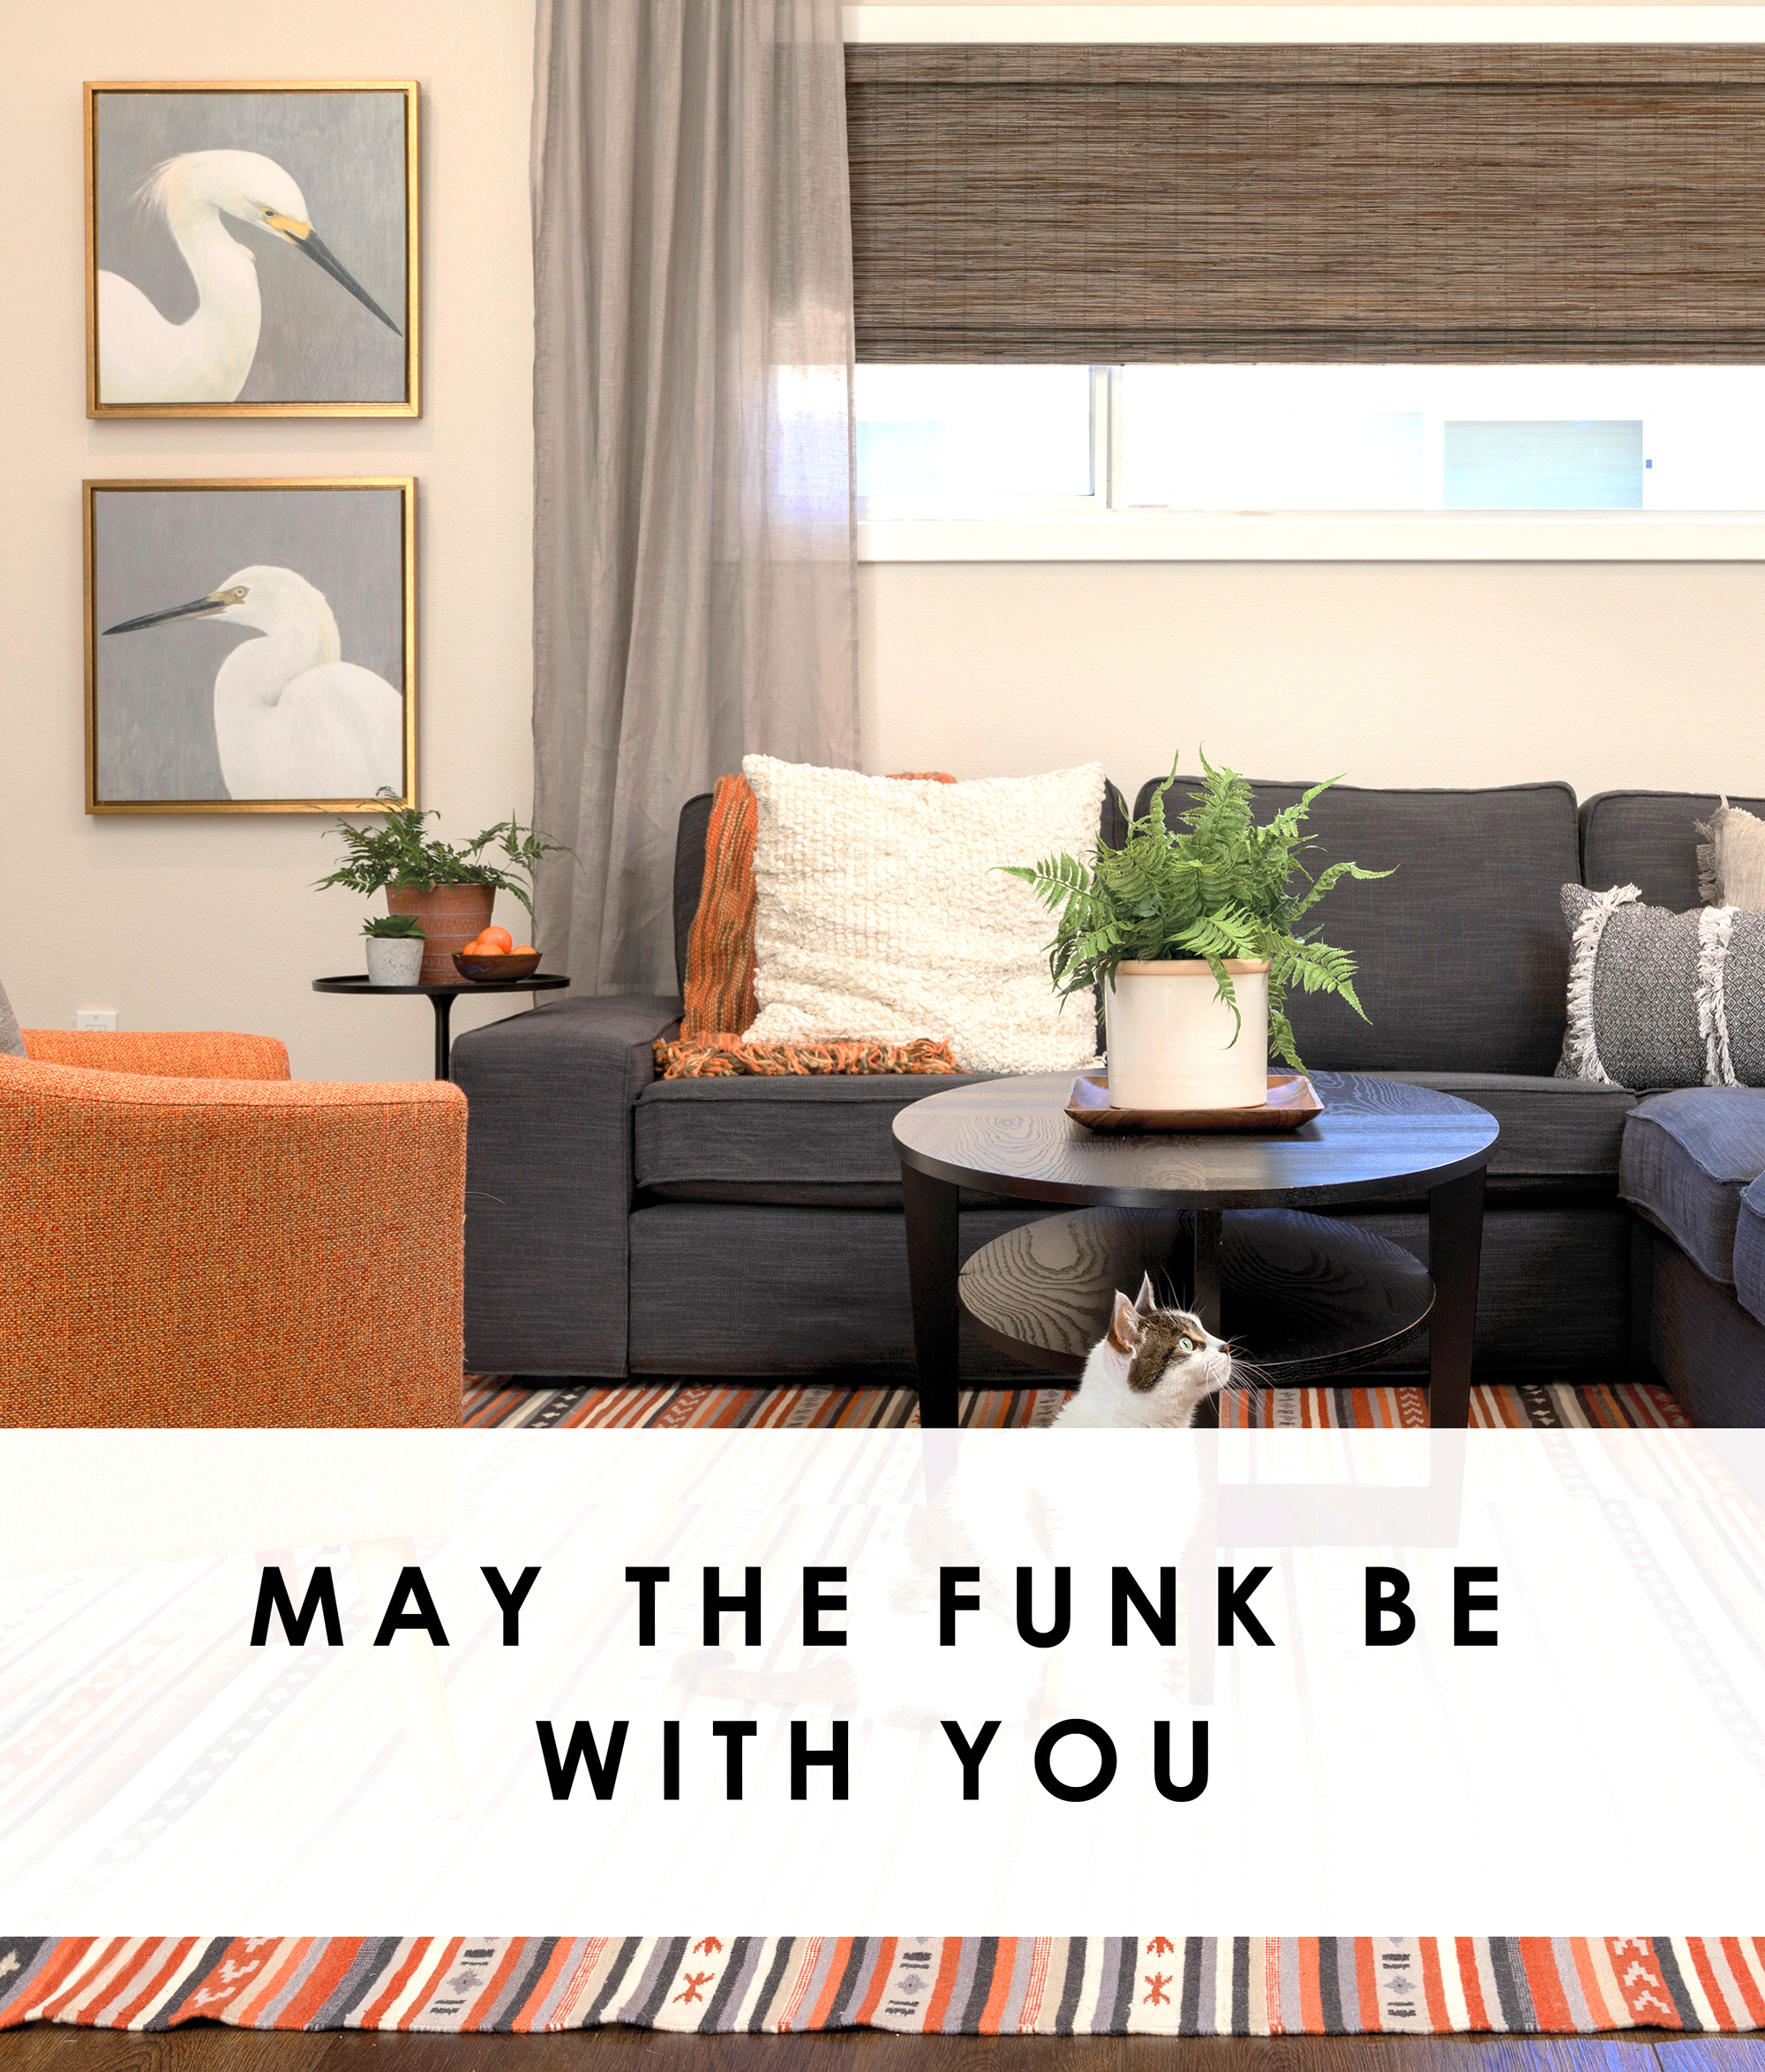 My the Funk be with You13.jpg